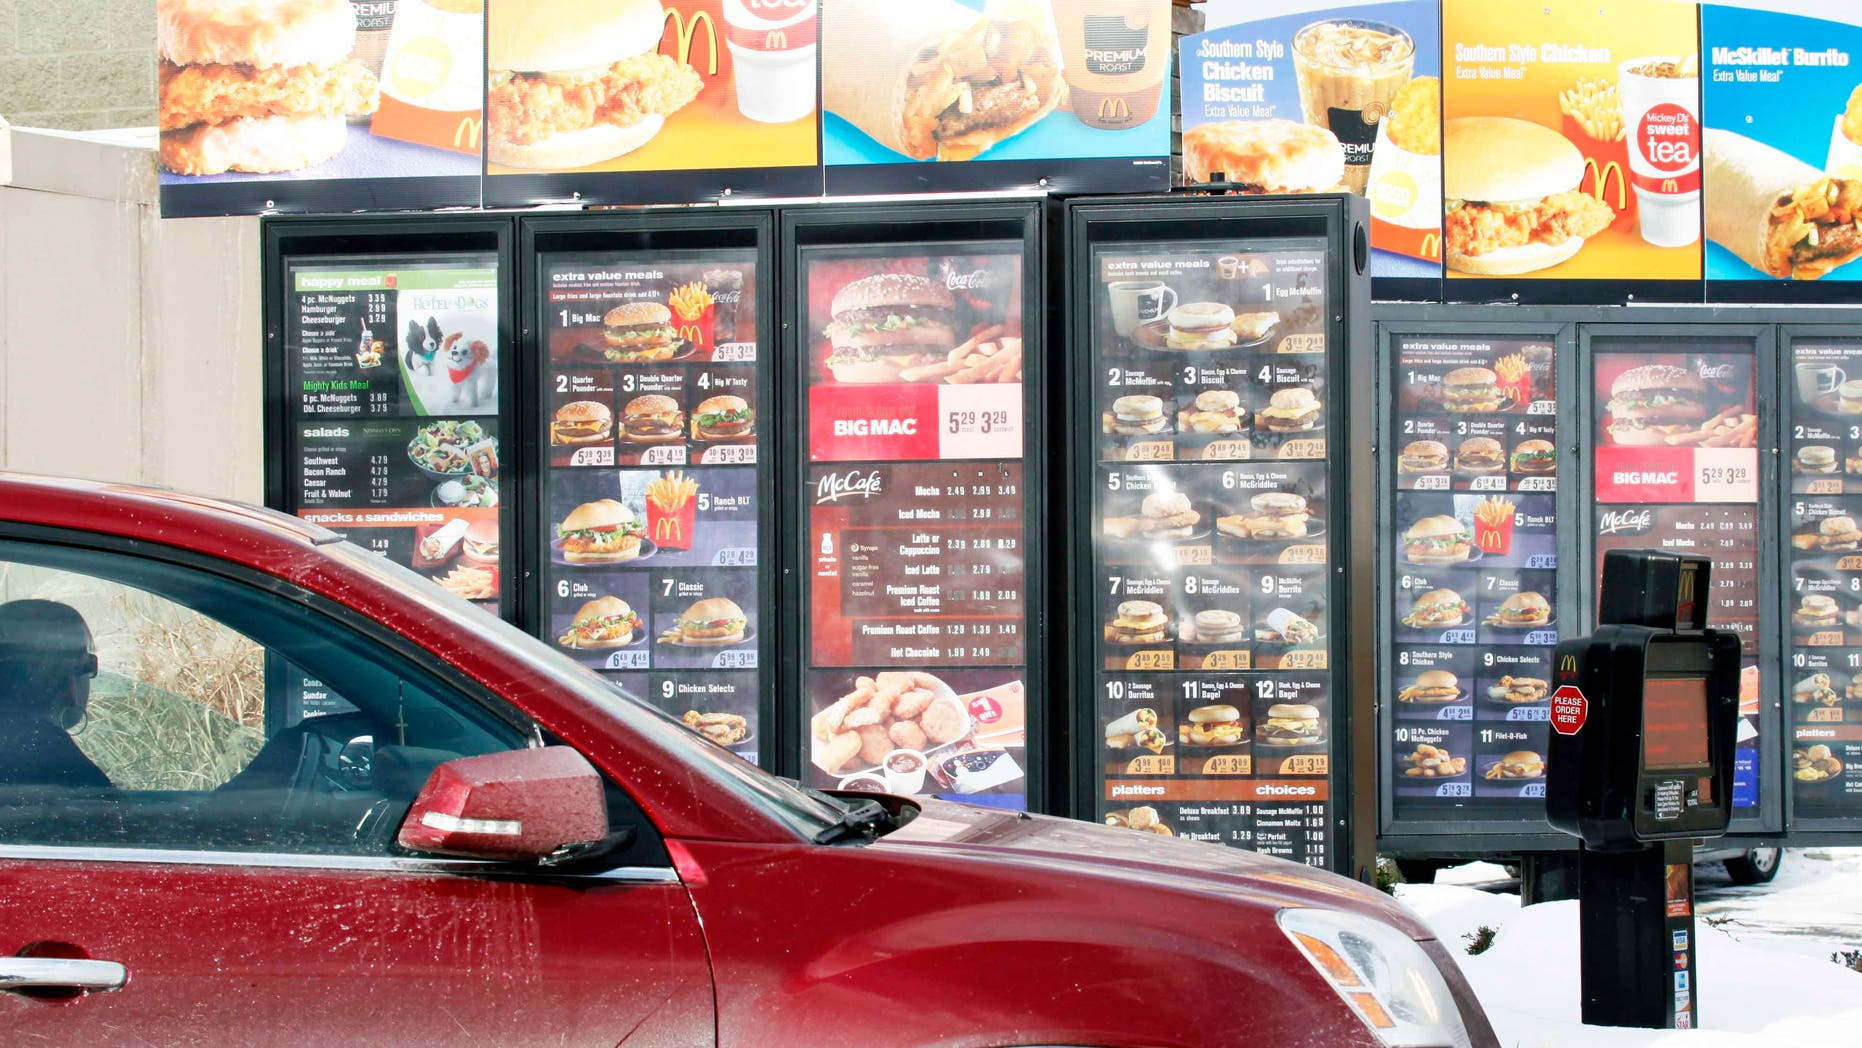 McDonald's is working to improve order accuracy at drive-thru windows.